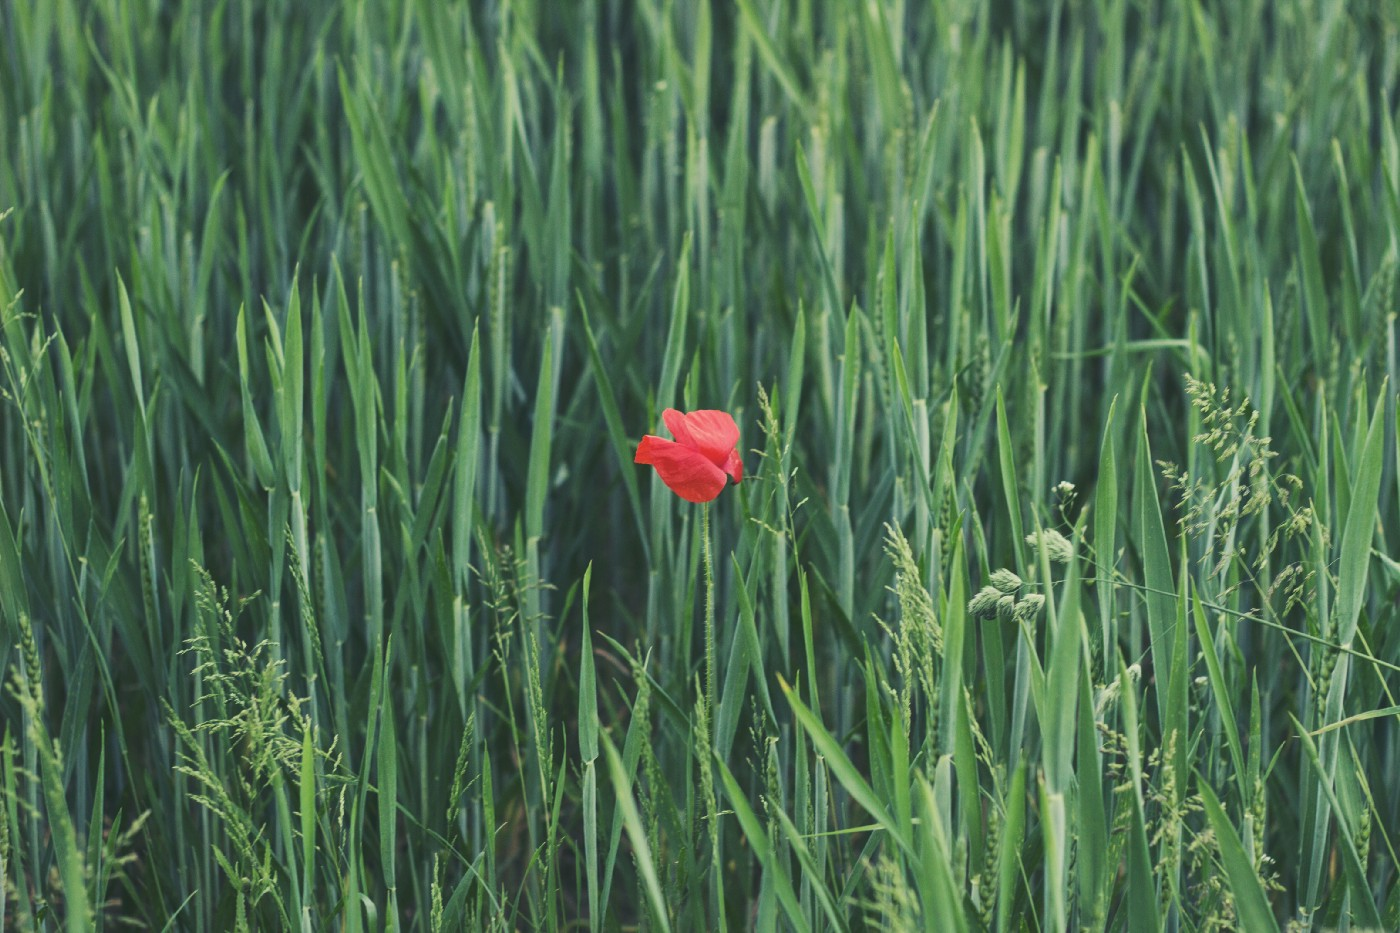 A field of long grass with a single red poppy in the middle of the photo.